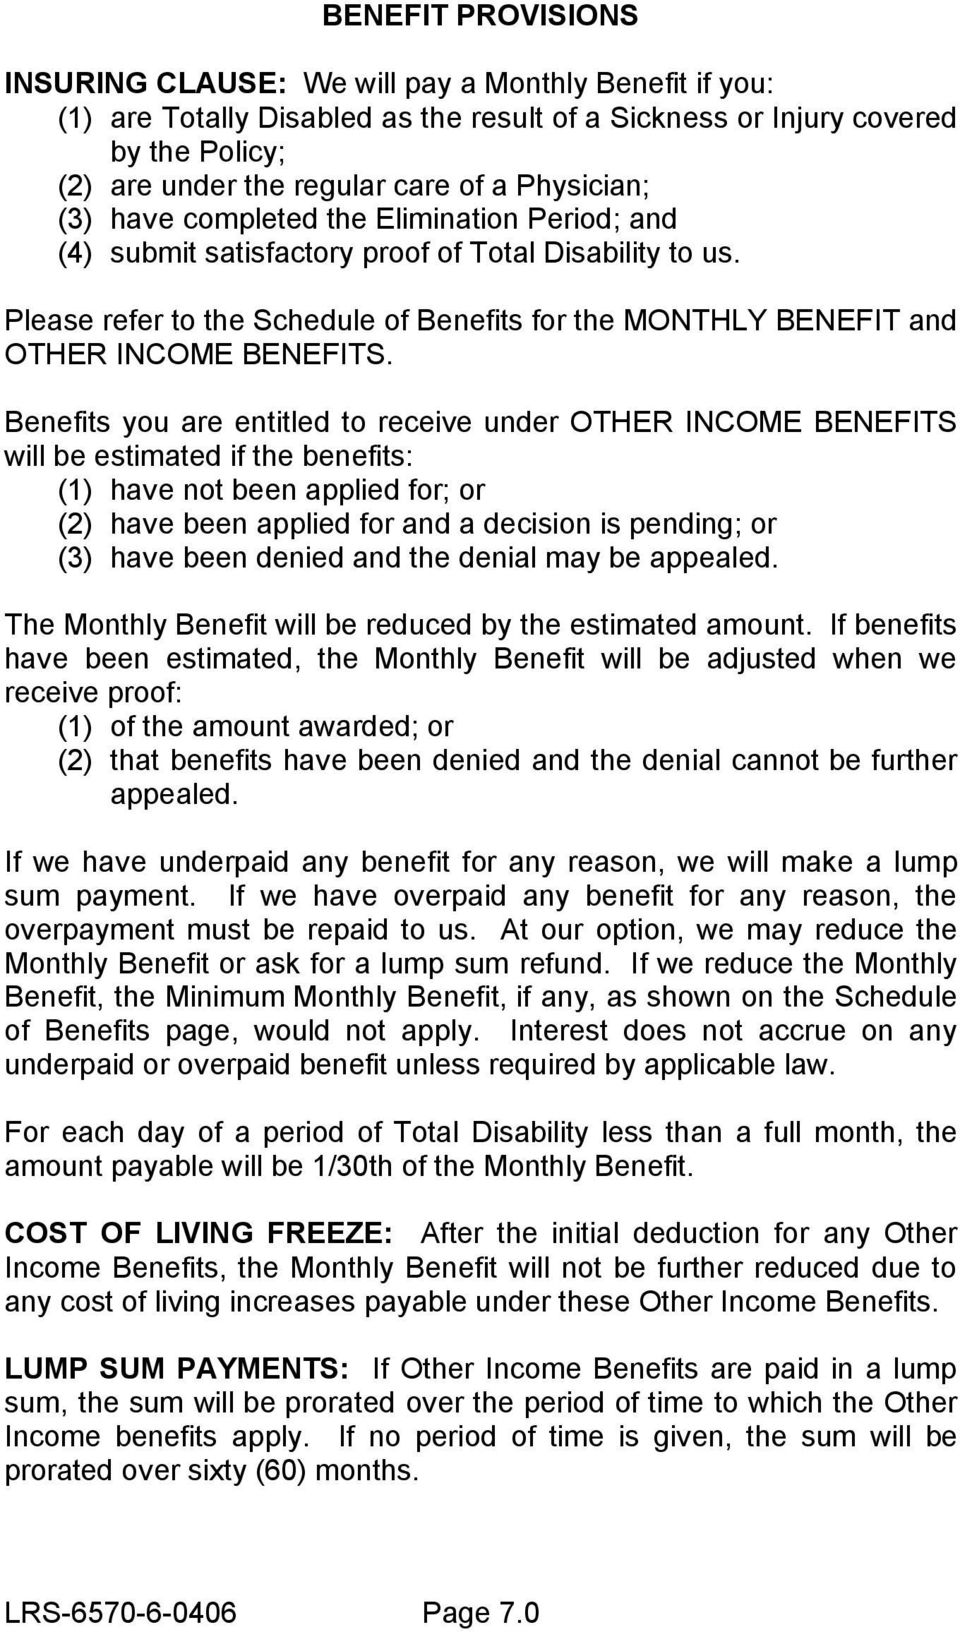 Please refer to the Schedule of Benefits for the MONTHLY BENEFIT and OTHER INCOME BENEFITS.